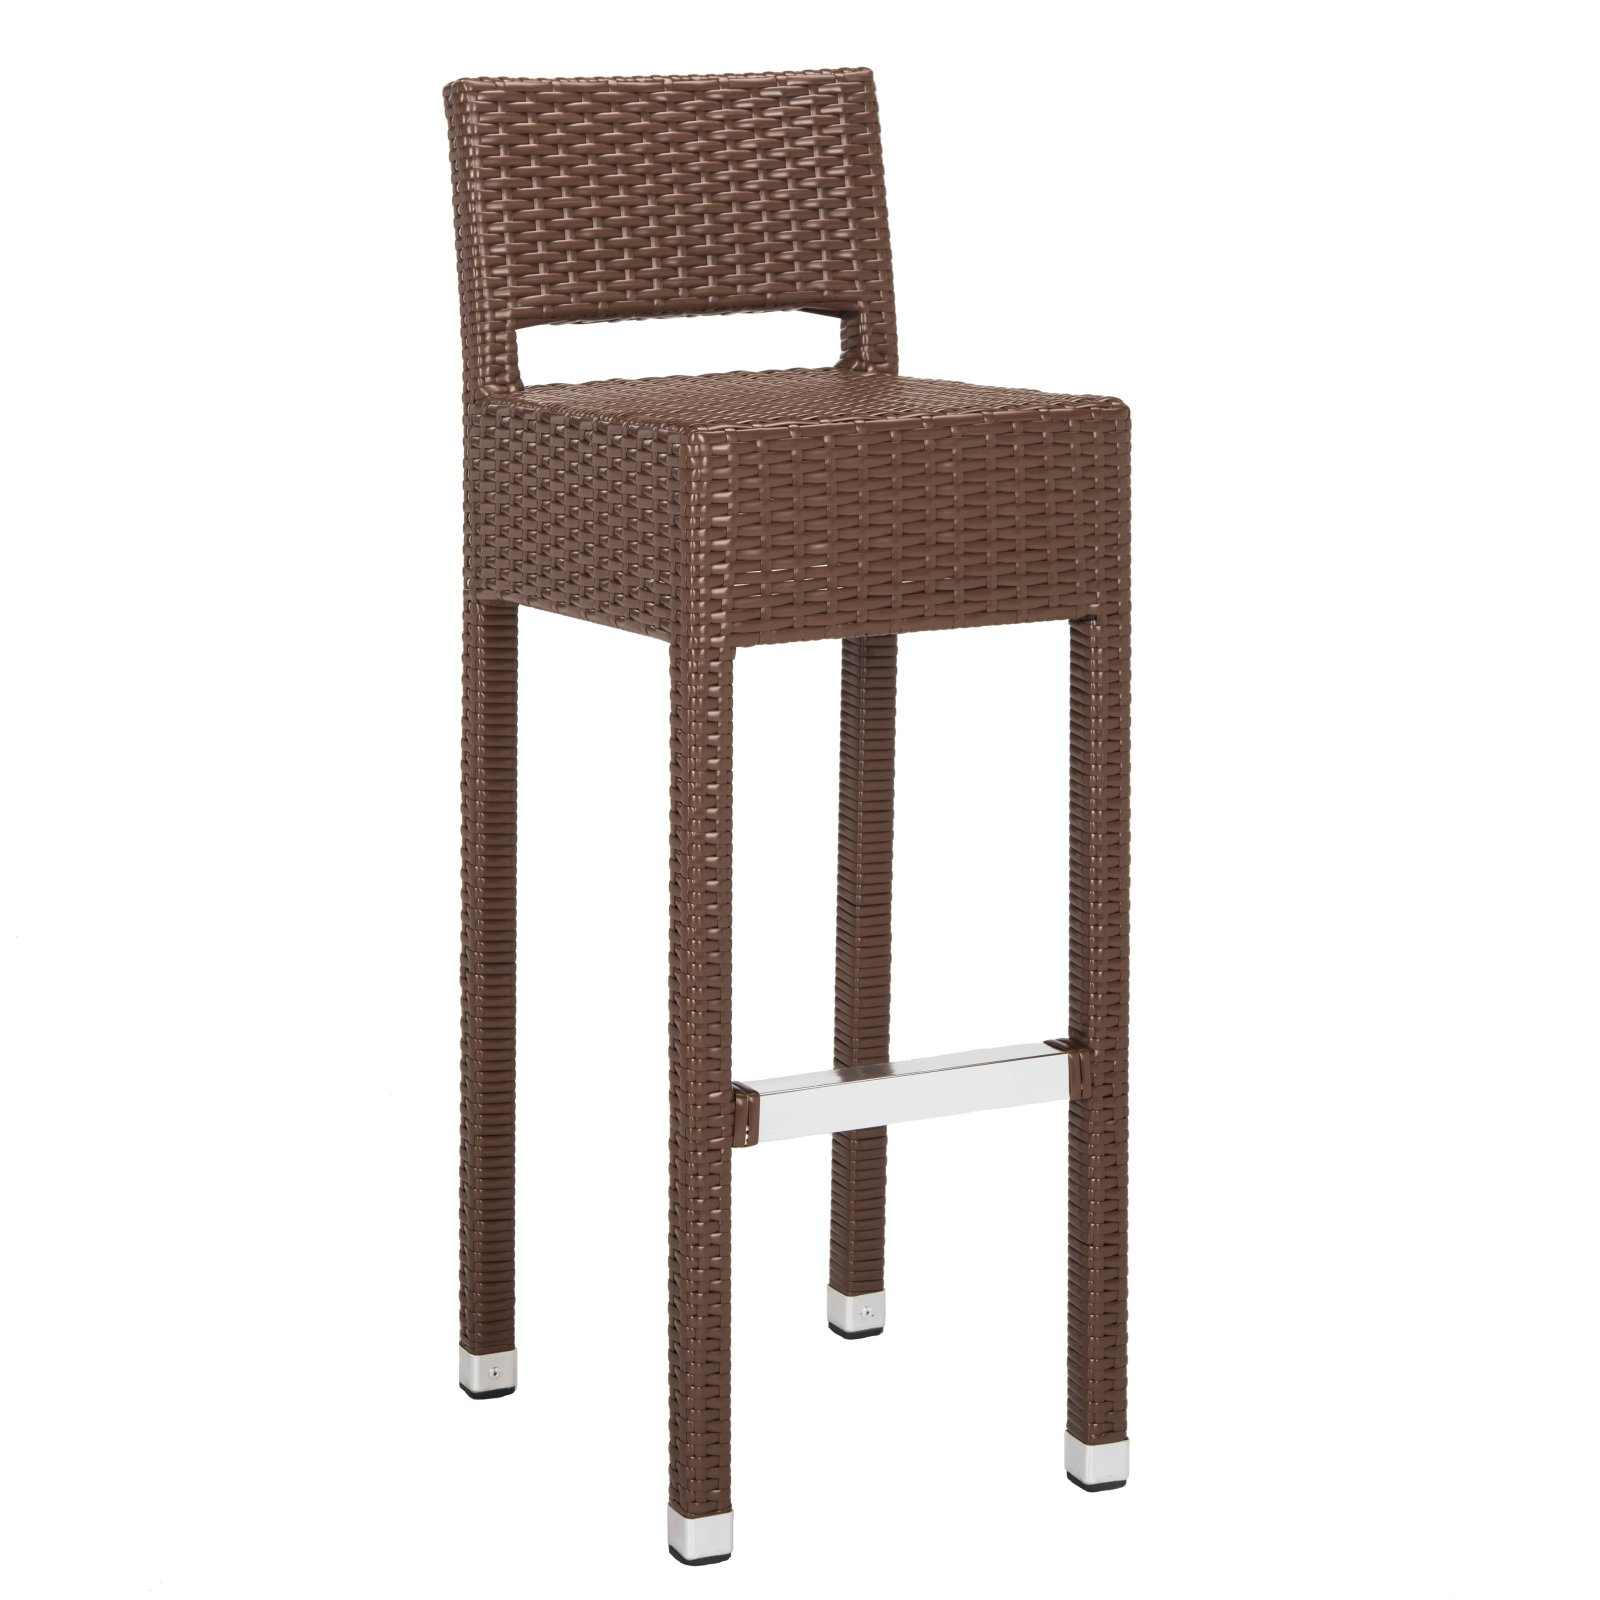 Safavieh Landry 38 in. High Indoor/Outdoor Rattan Bar Stool